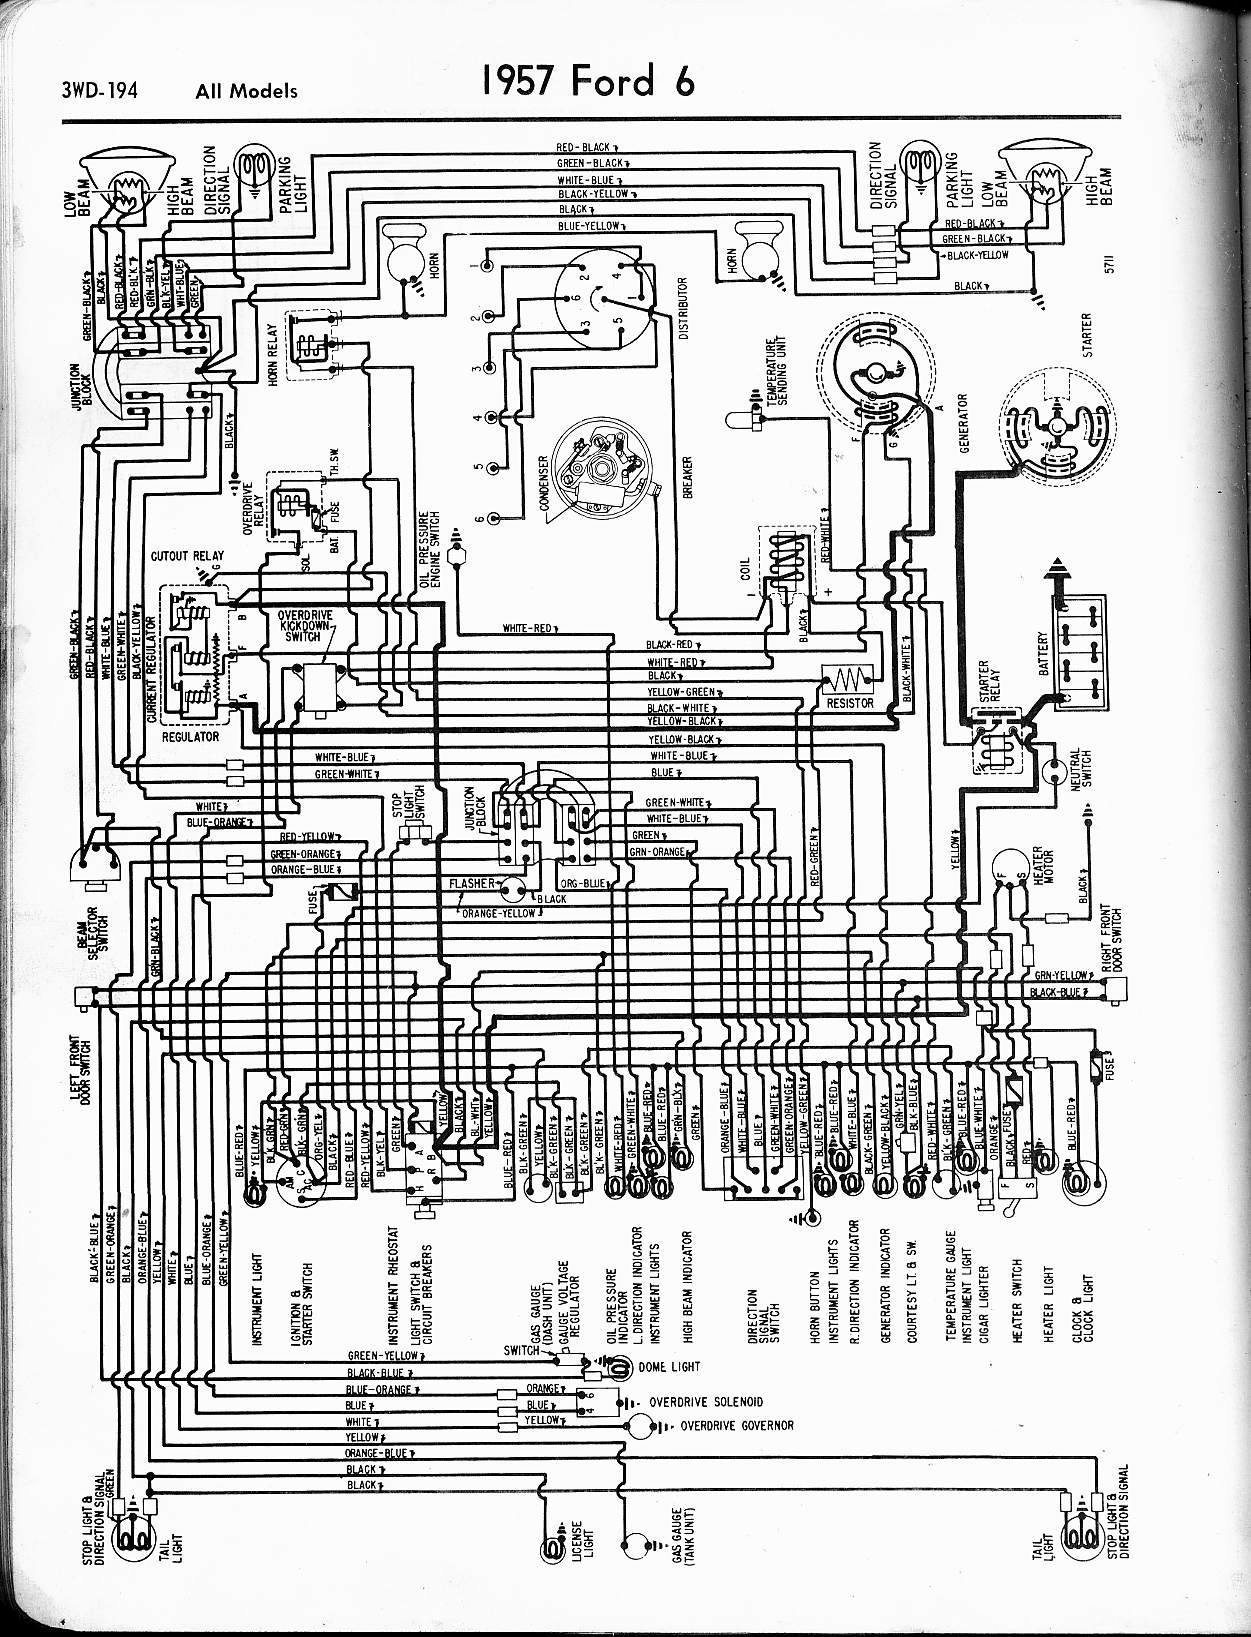 57_ford_wiring ford diagrams ford ltl 9000 wiring diagram at honlapkeszites.co